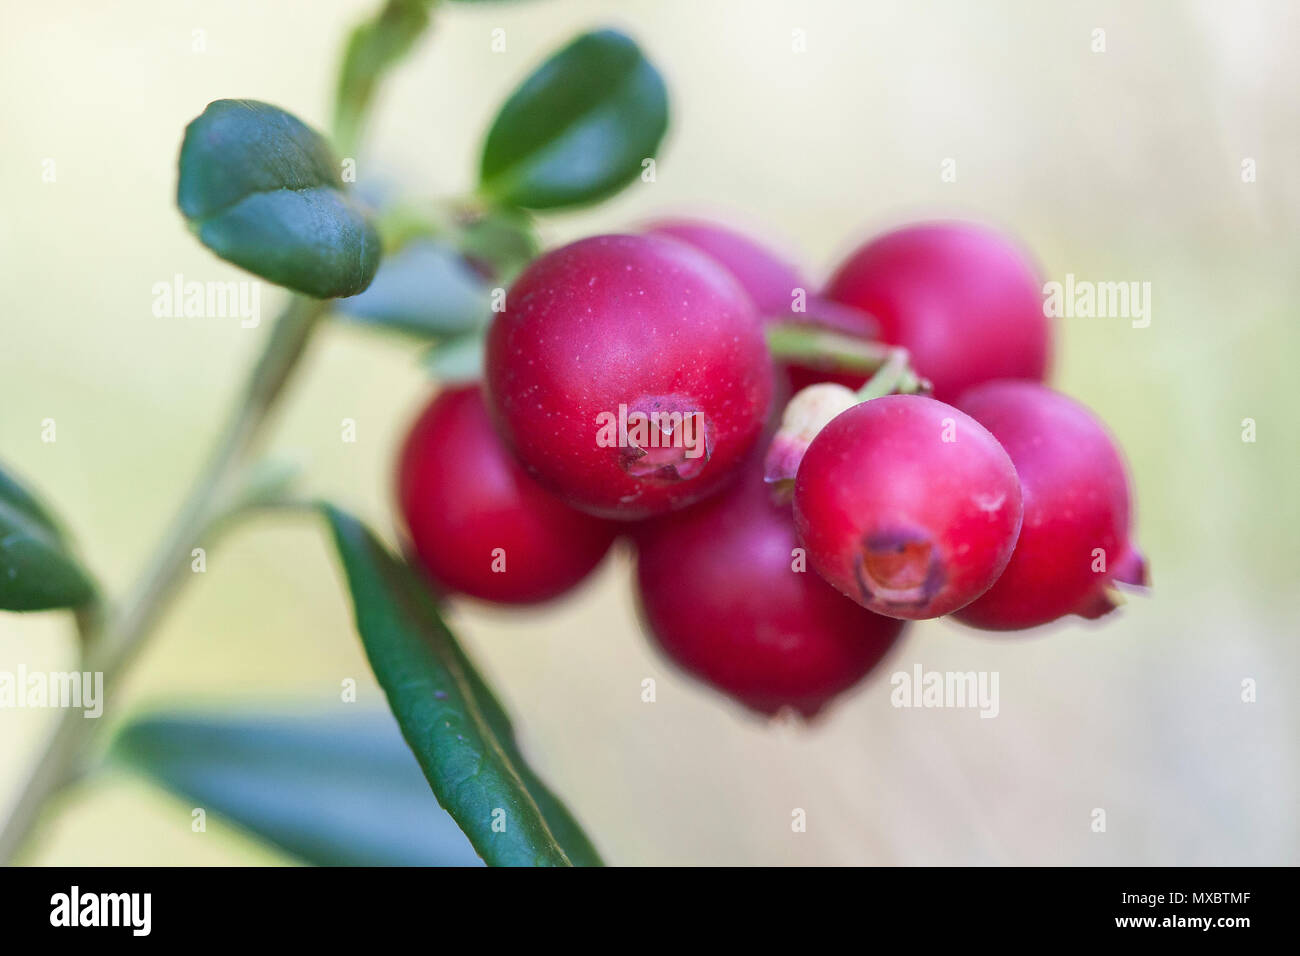 Vaccinium vitis-idaea (lingonberry, partridgeberry, or cowberry) is a short evergreen shrub in the heath family that bears edible fruit, native to bor - Stock Image